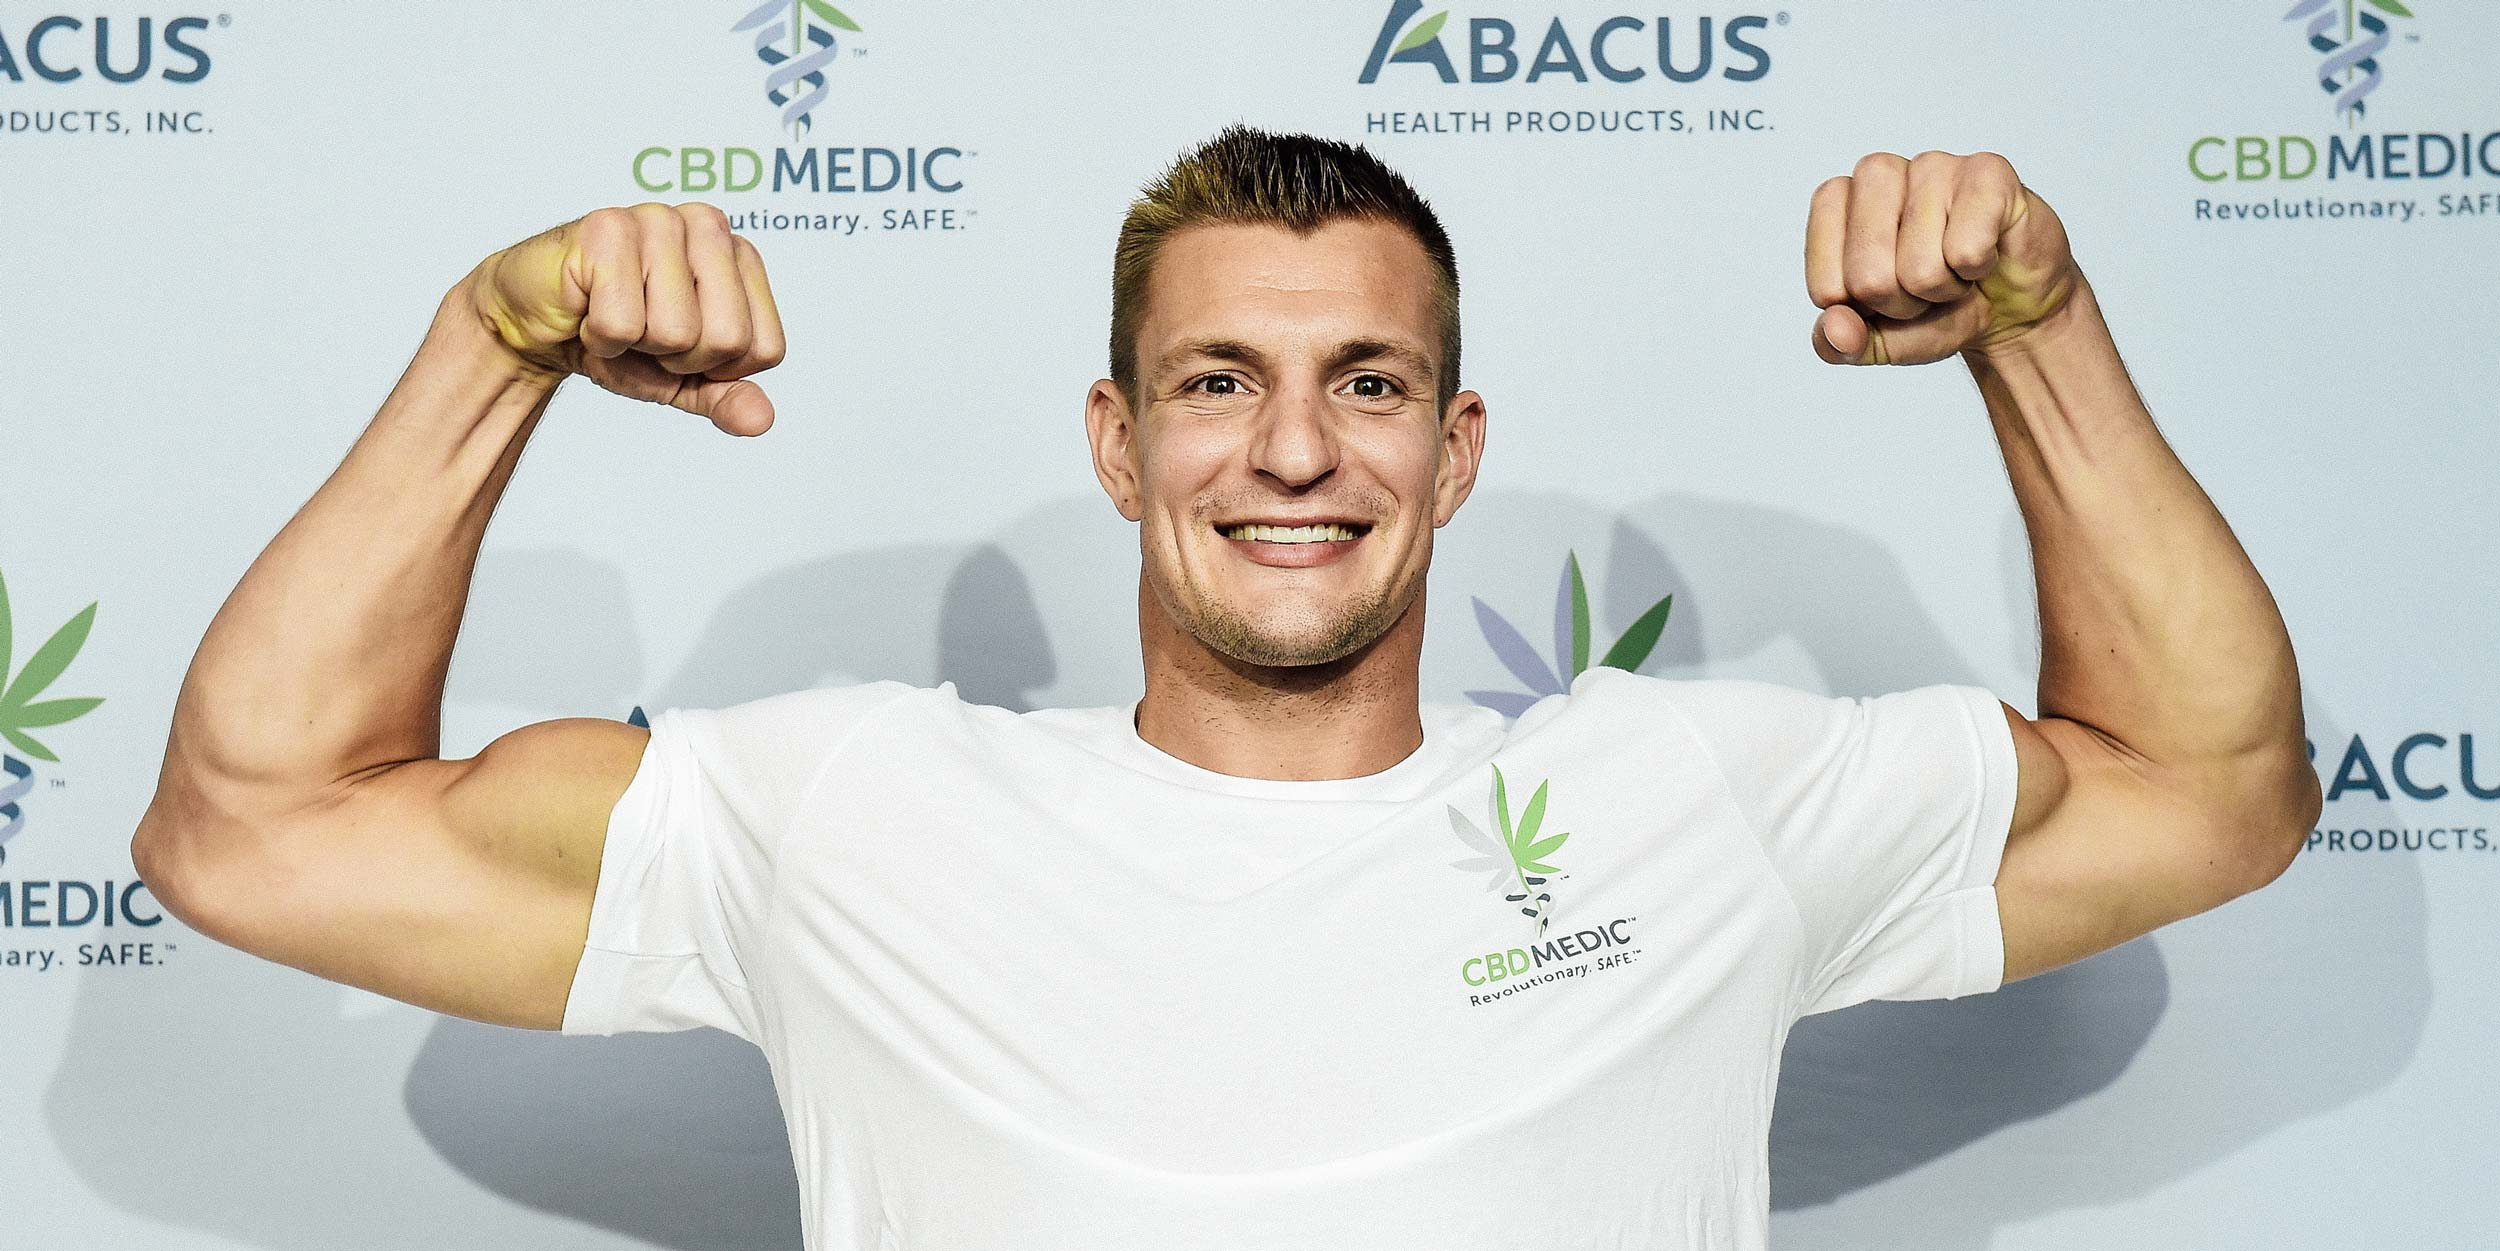 Rob Gronkowski flexing at a press conference promoting CBD.